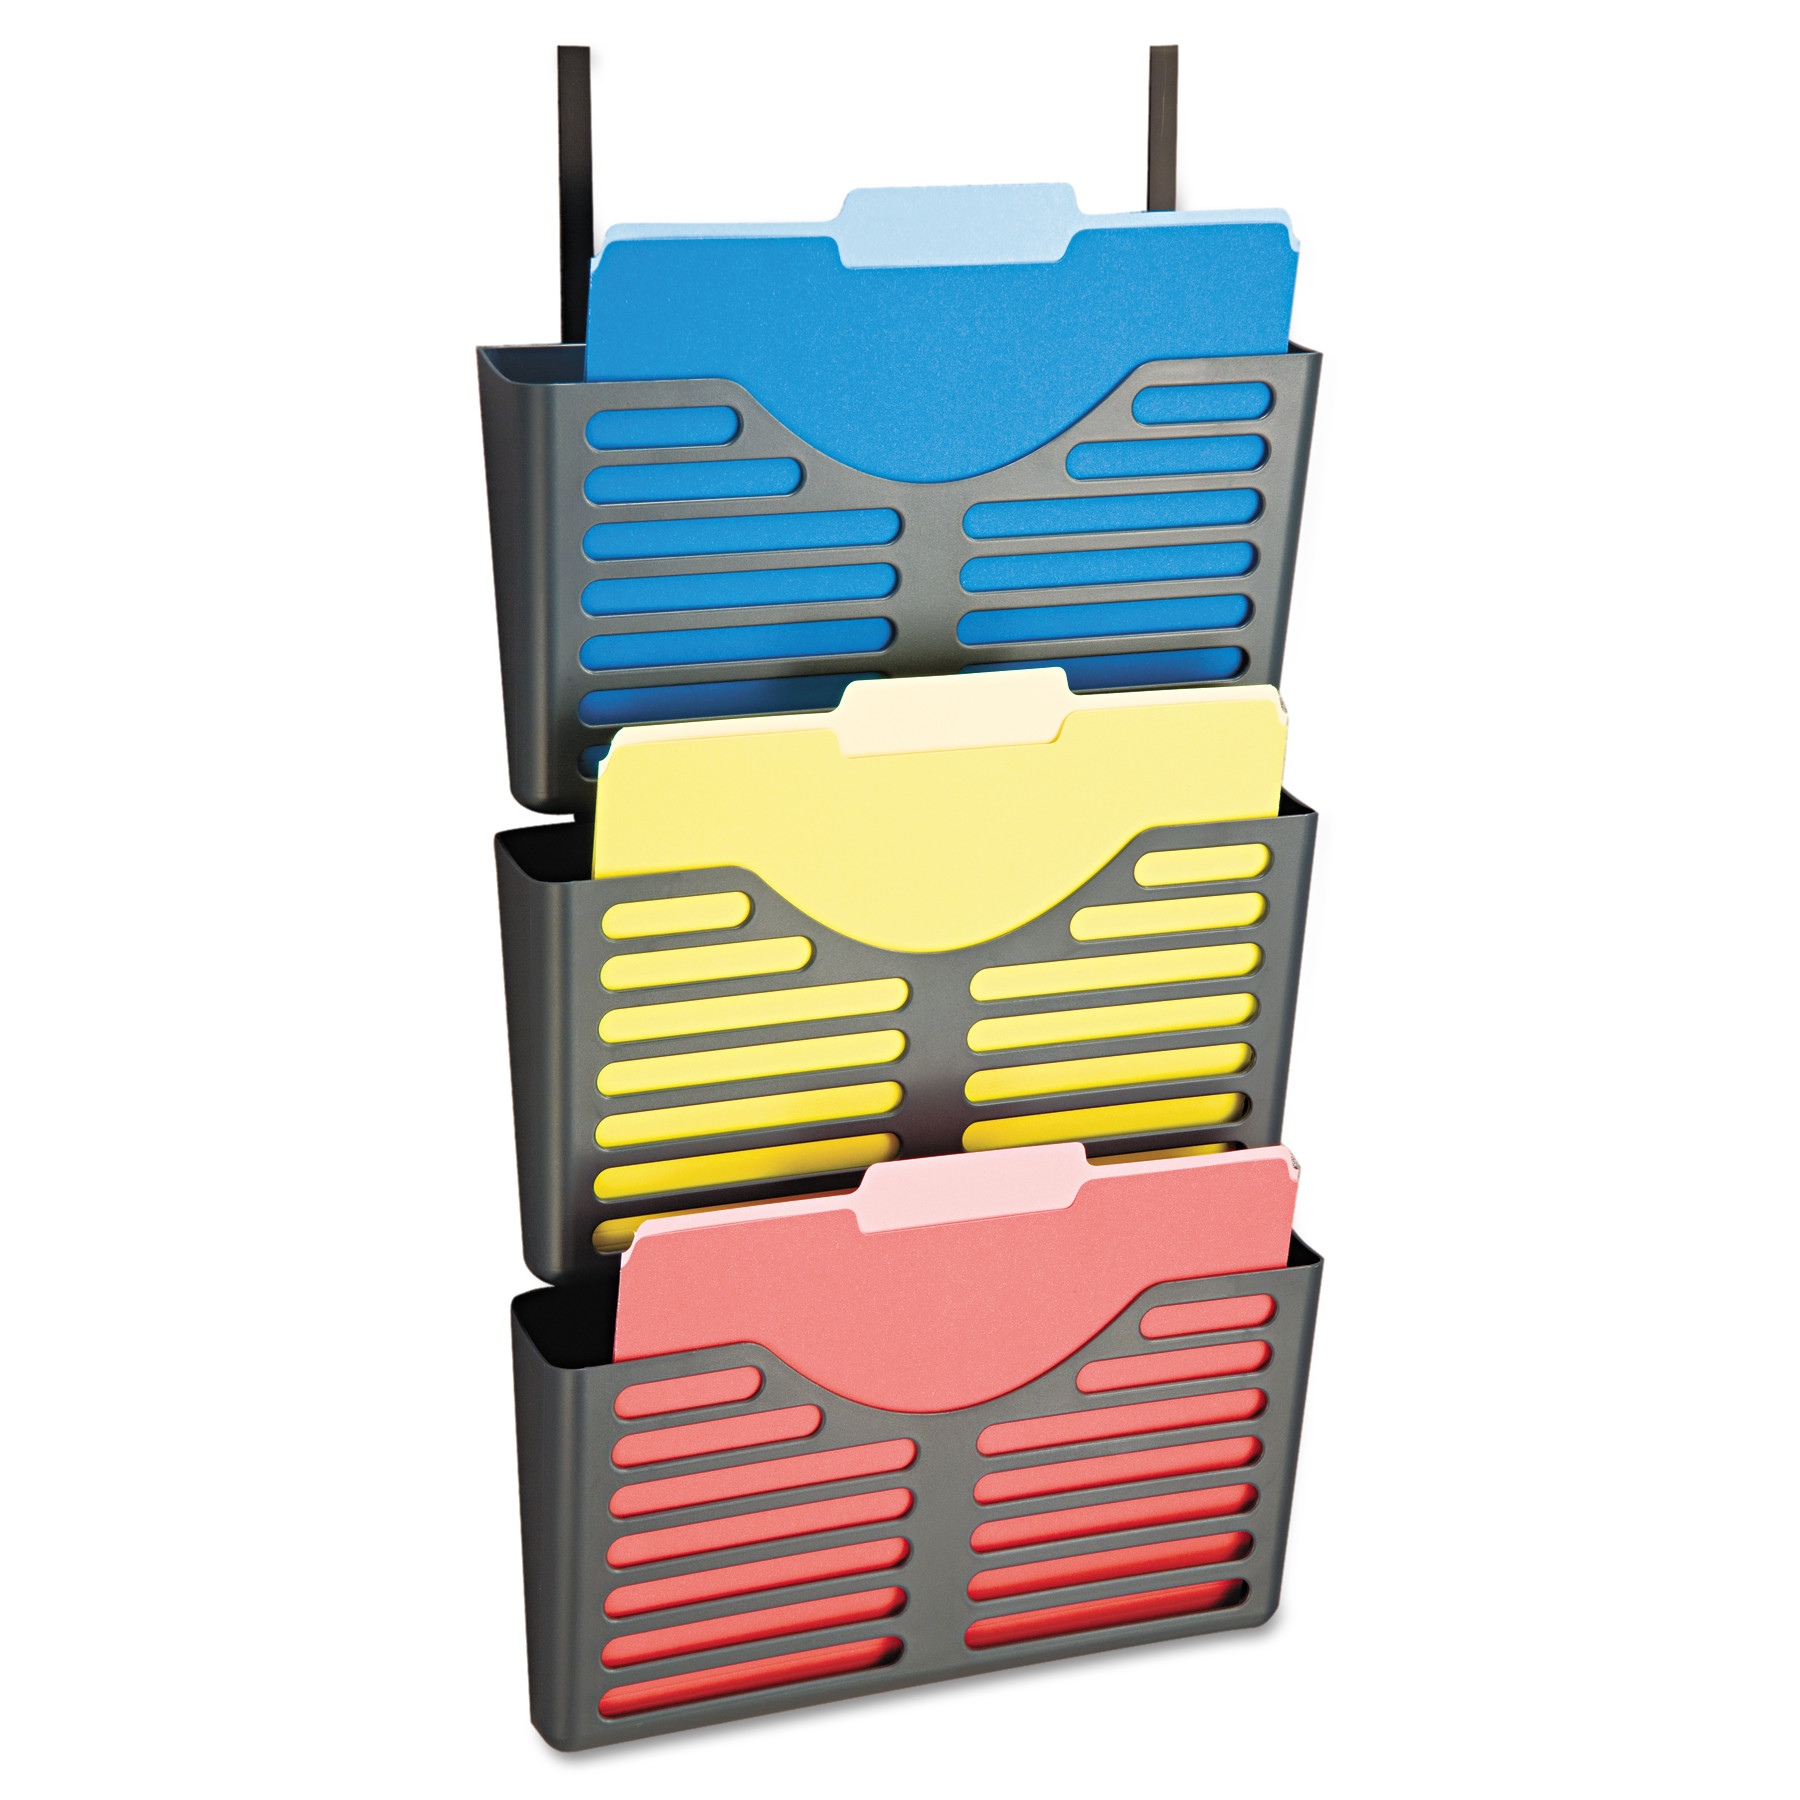 Officemate Filing System w/Hanger Set, 3 Pockets, Letter, 28 x 13 1/2 x 4 3/4, Charcoal -OIC29314